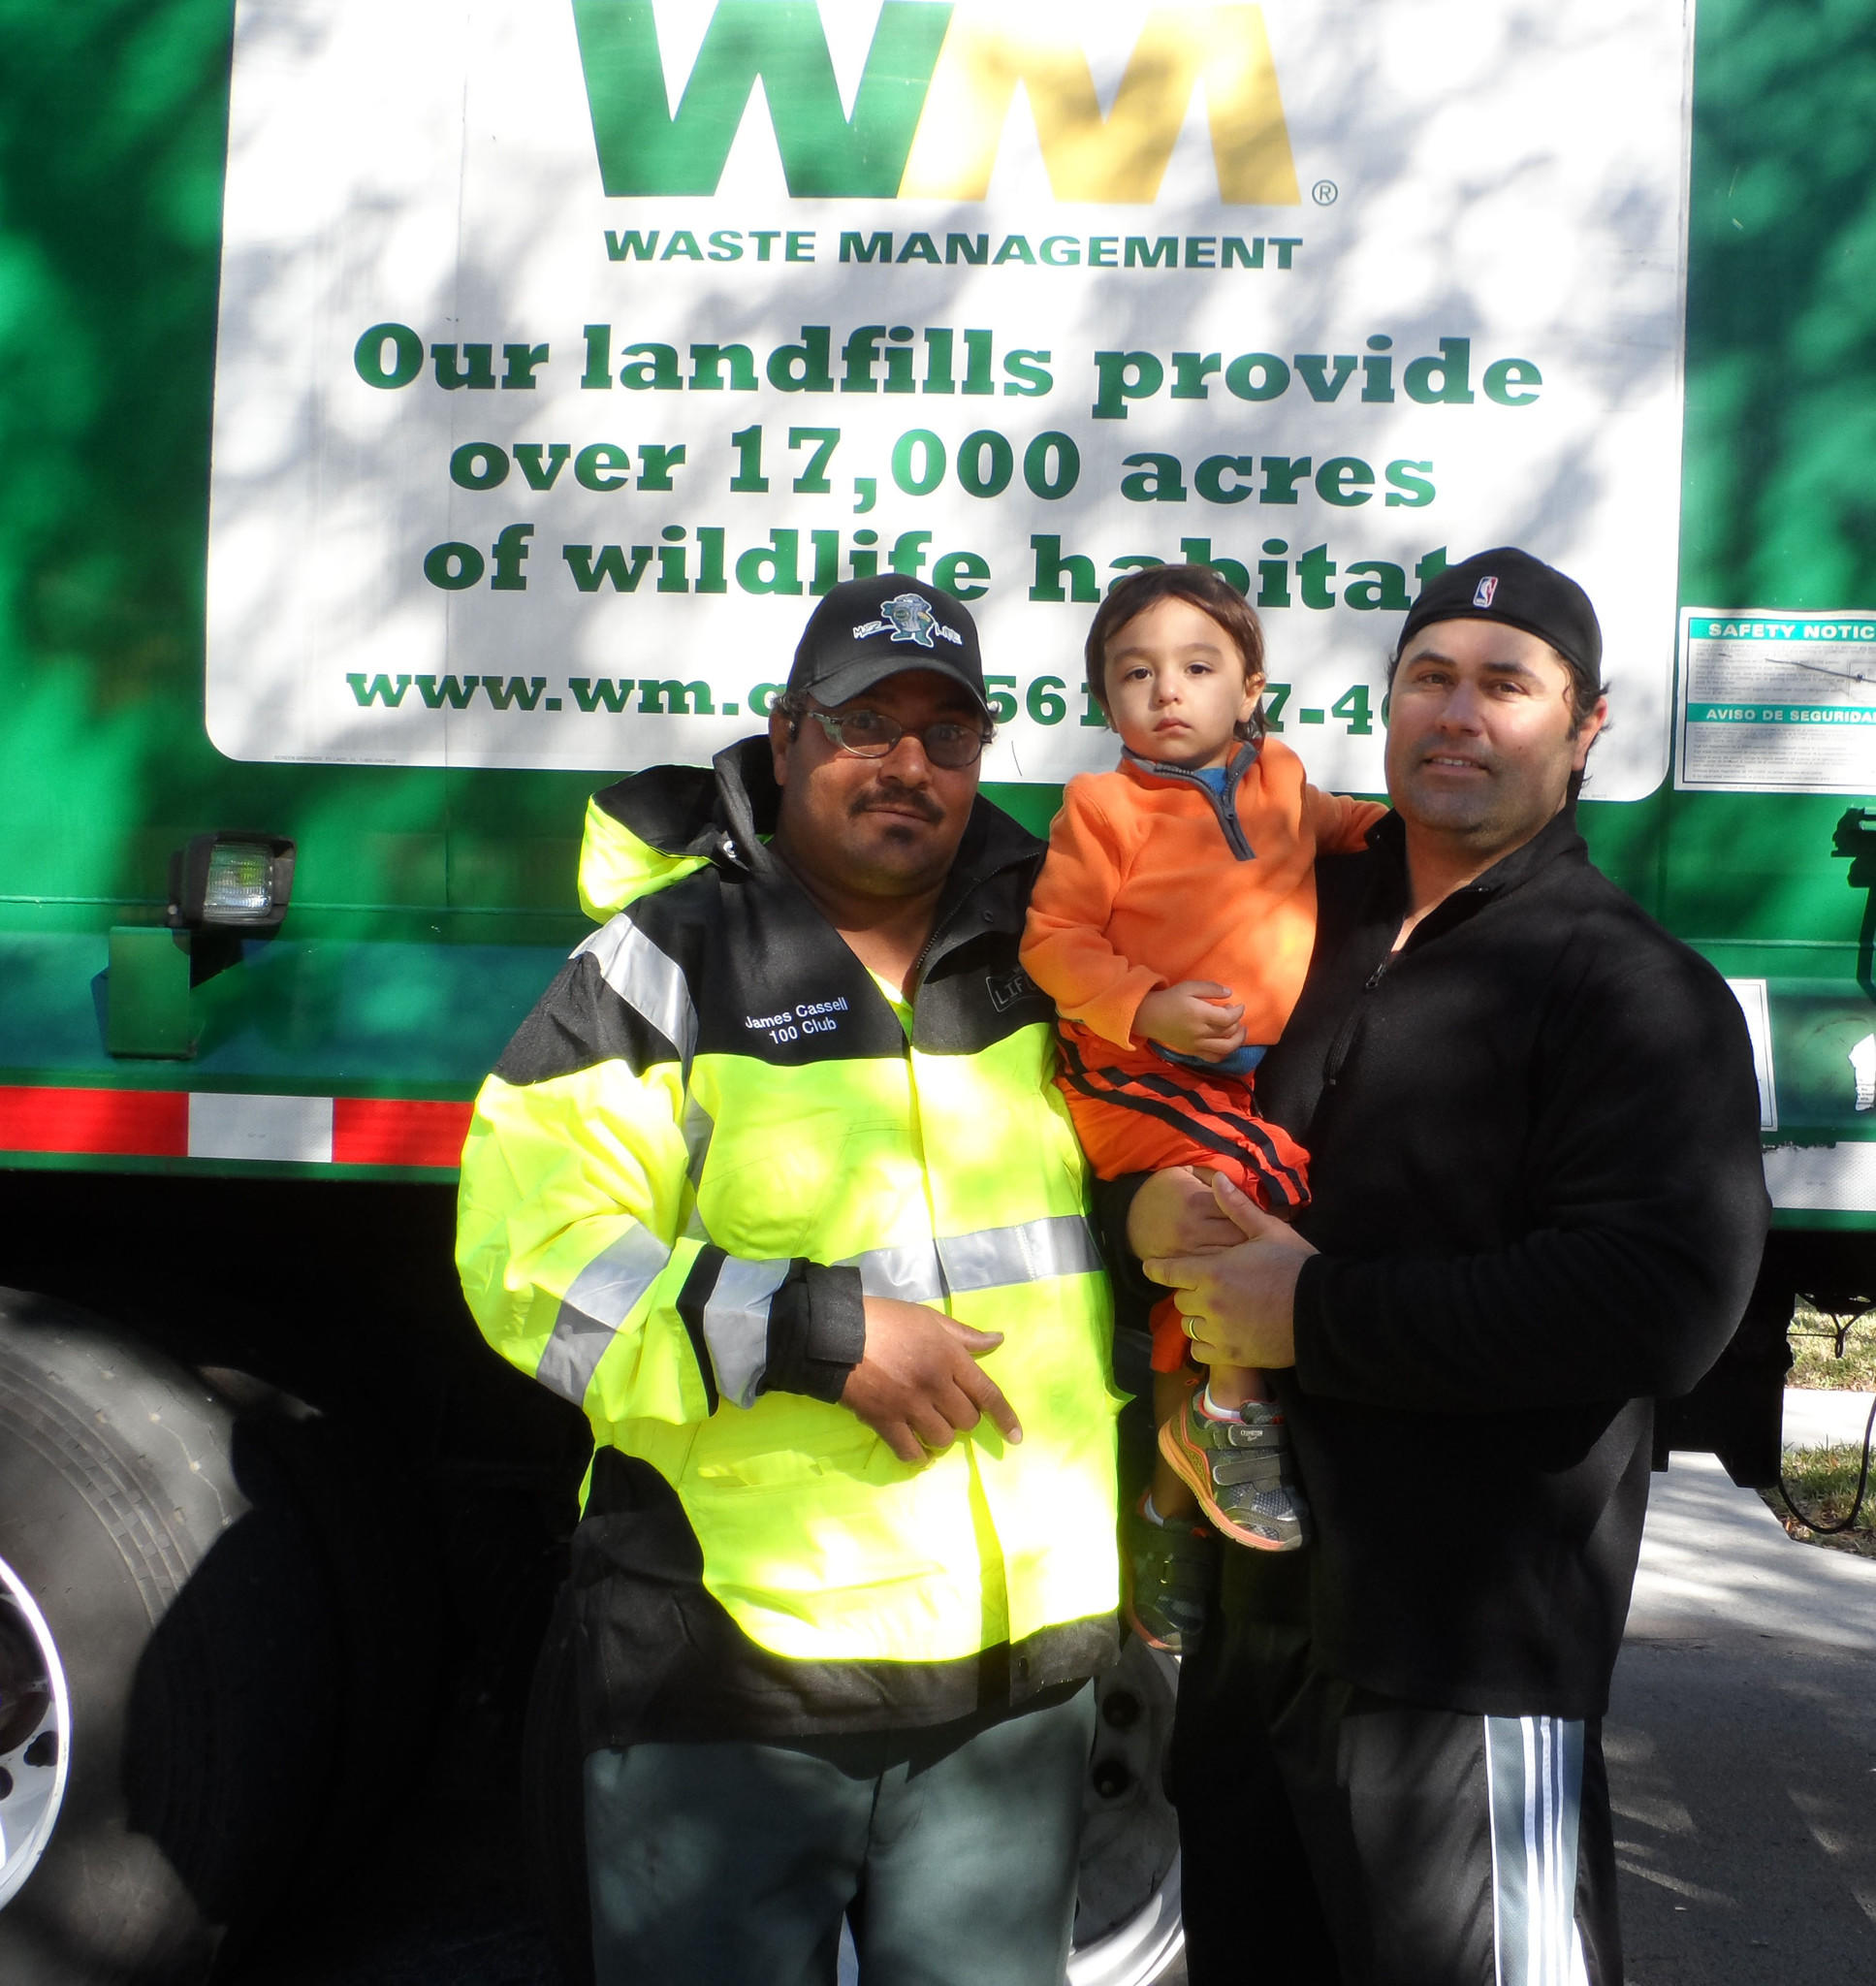 Waste Management driver James Cassell, left, visits with Mason Tracy, 2, and his dad James following his actions last week to rescue Mason from traffic at his neighborhood intersection in Delray Lakes.